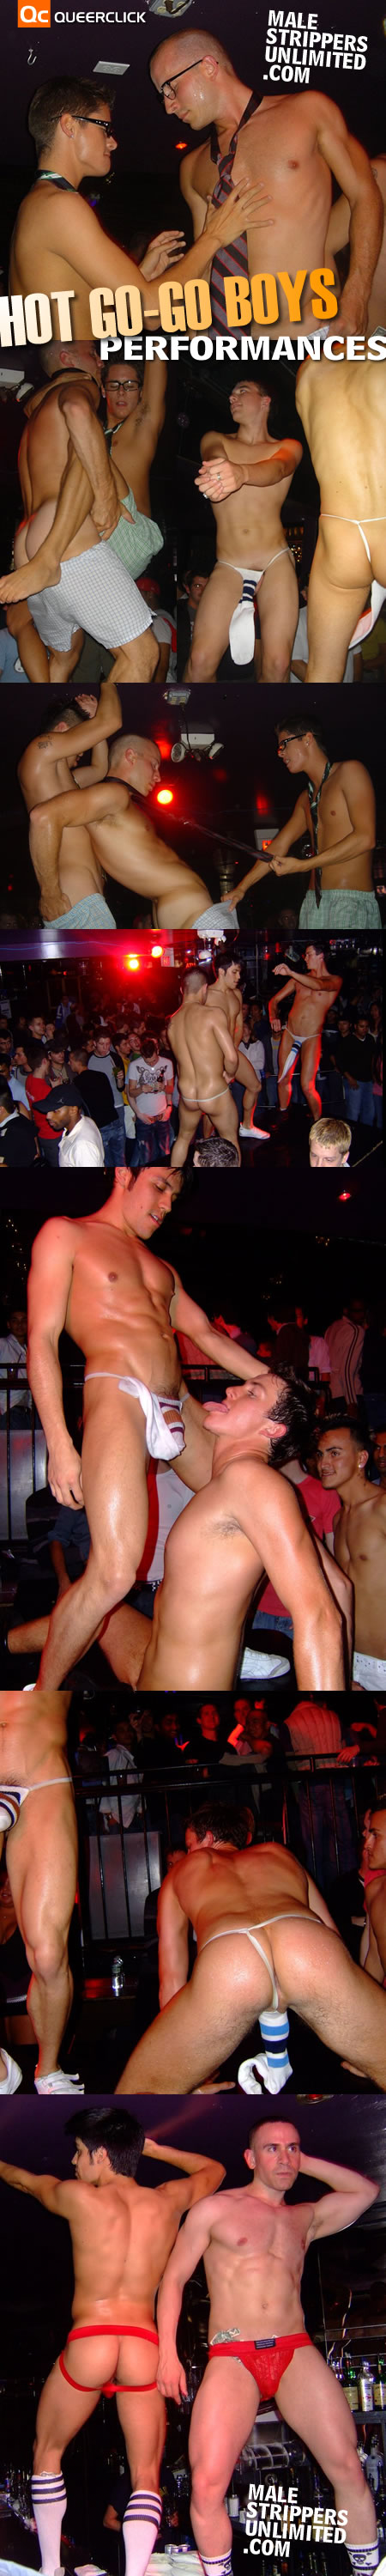 Queerclick male stripper unlimited archive